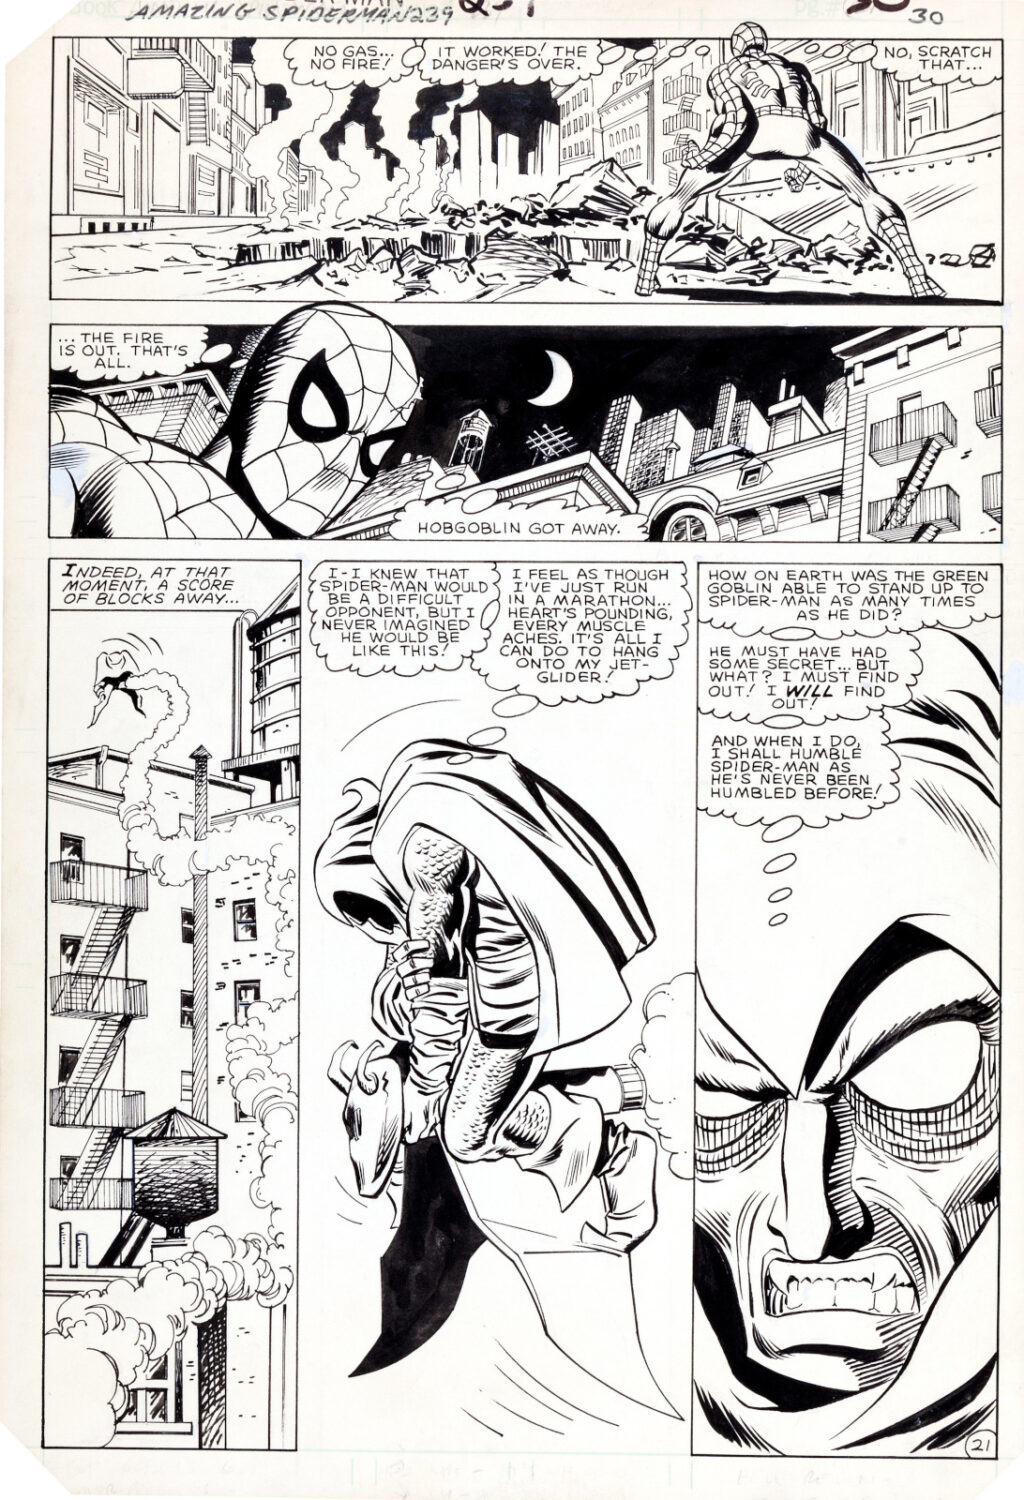 Amazing Spider Man issue 239 page 21 by John Romita Jr. and Frank Giacoia